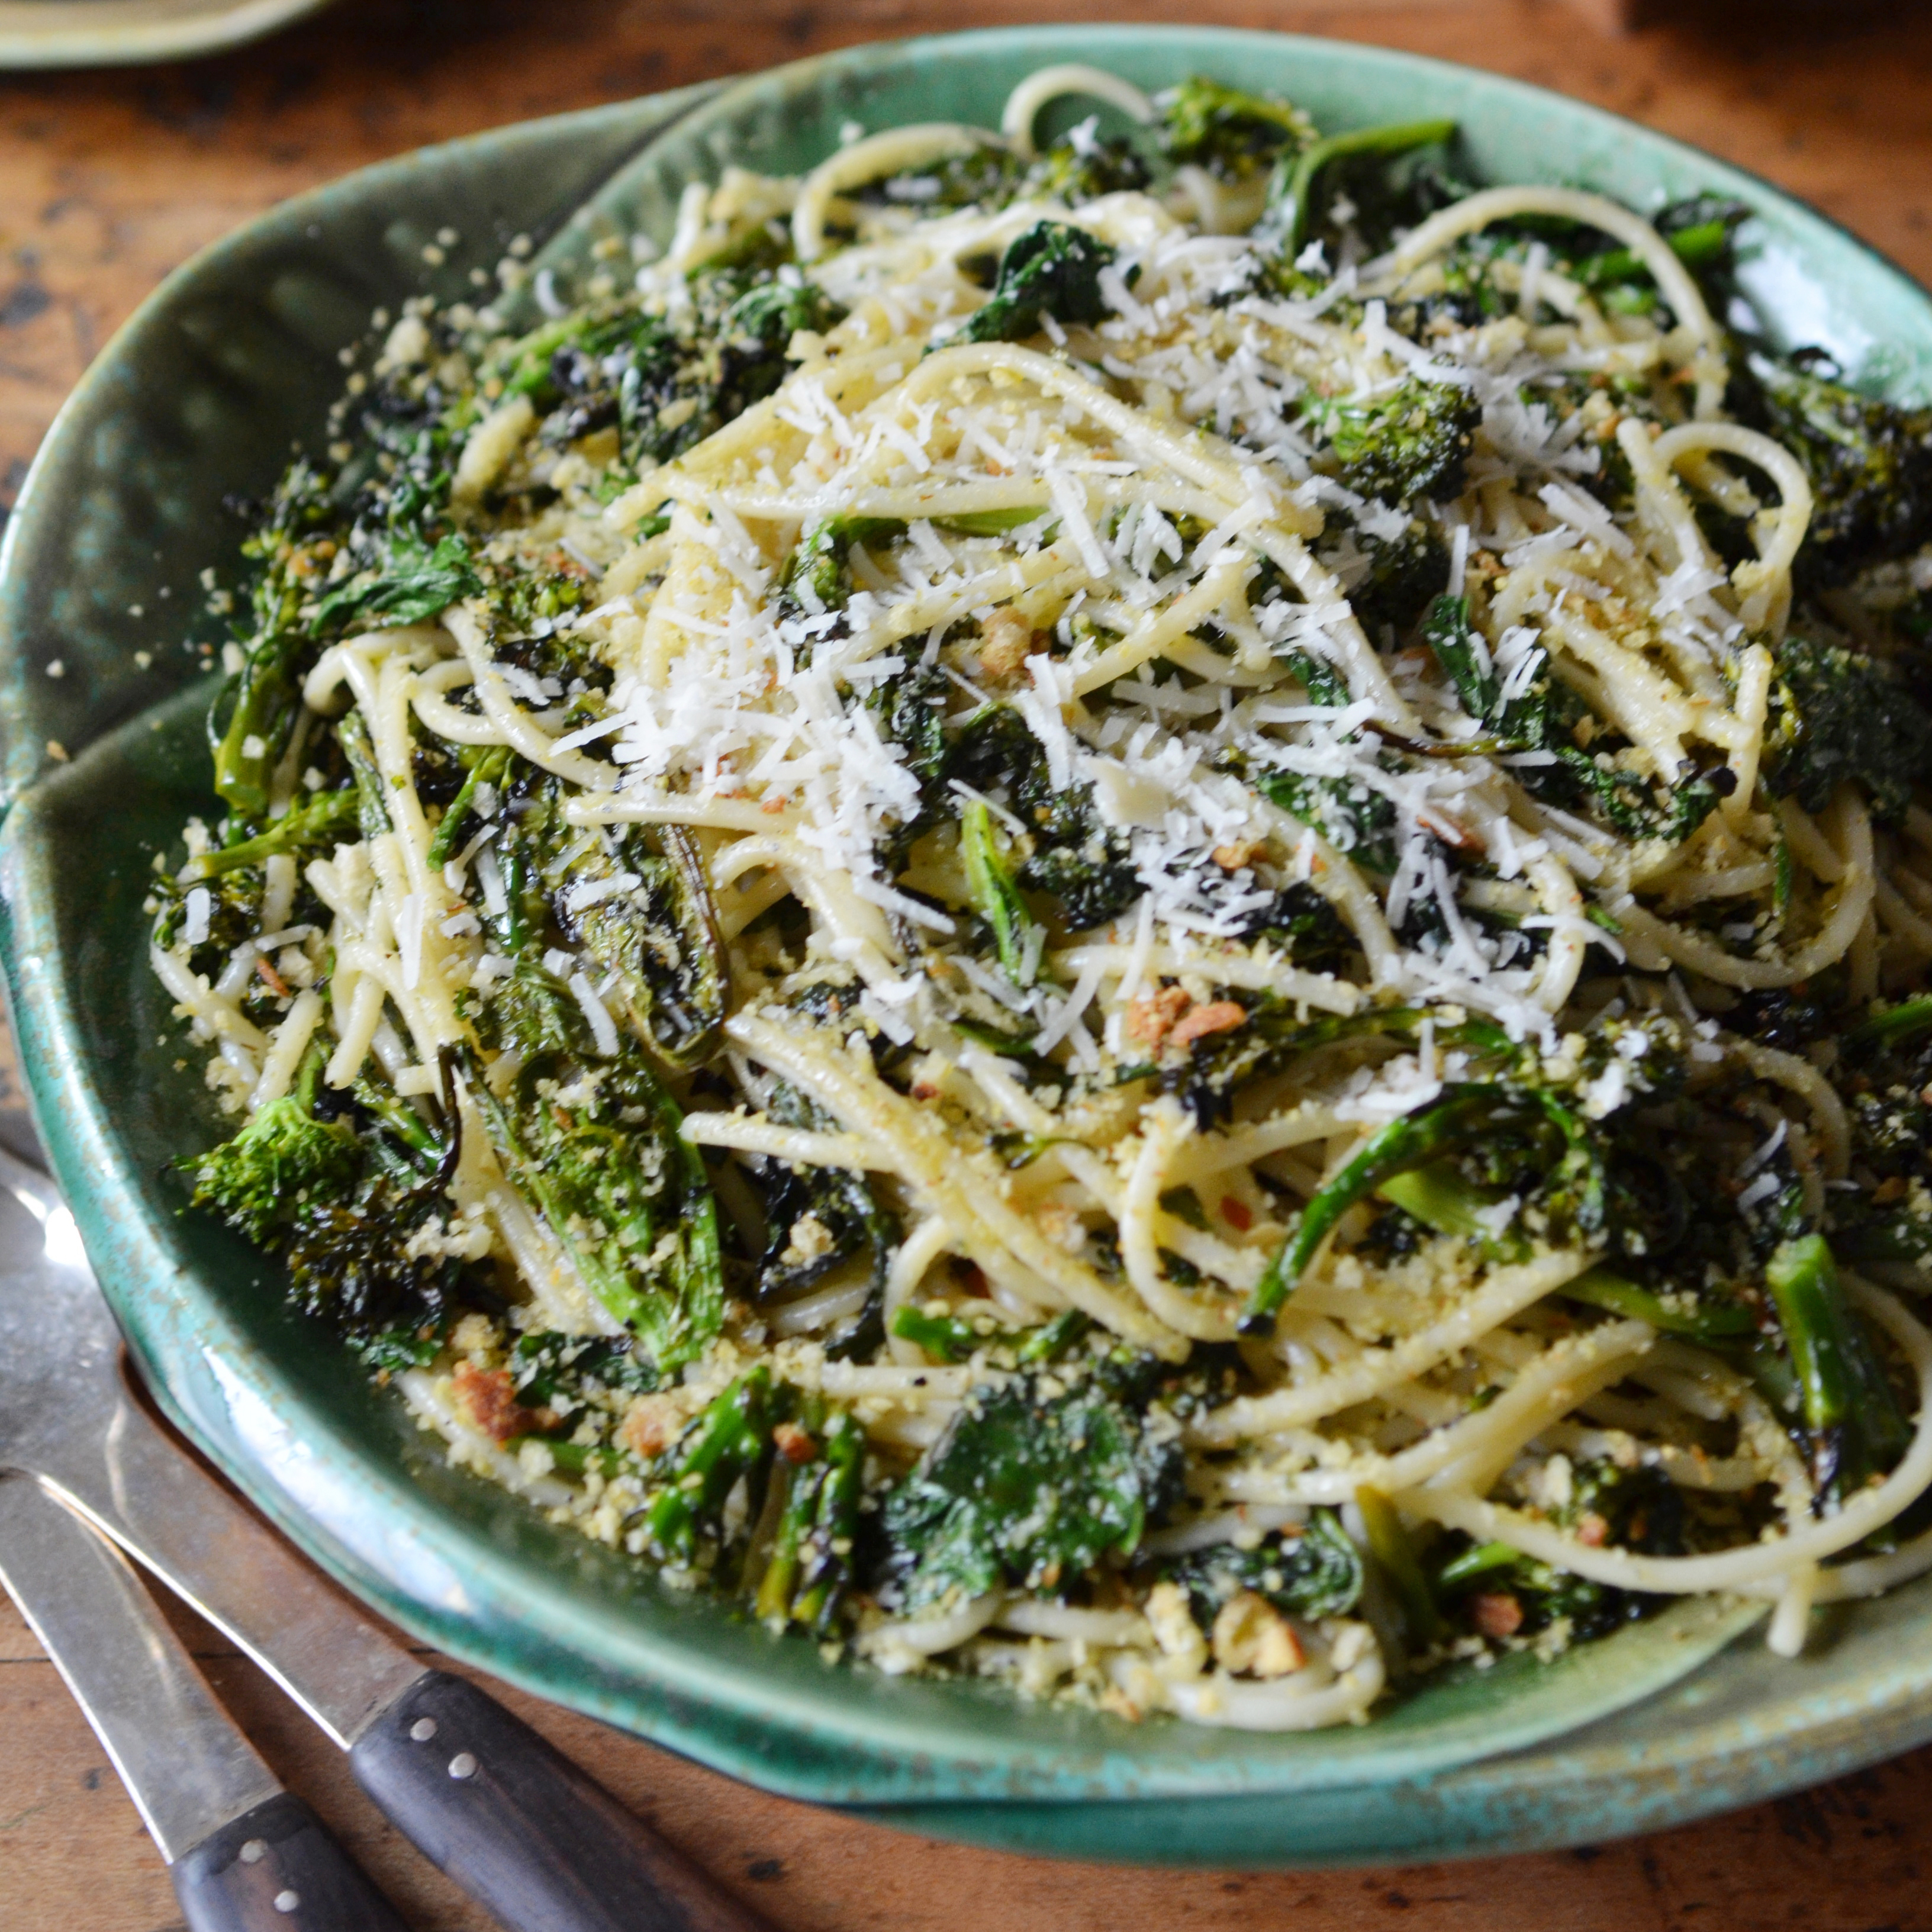 Charred Broccoli Rabe with Chitarra and Lemony Bread Crumbs © Madeleine Hill Charred Broccoli Rabe with Chitarra and Lemony Bread Crumbs